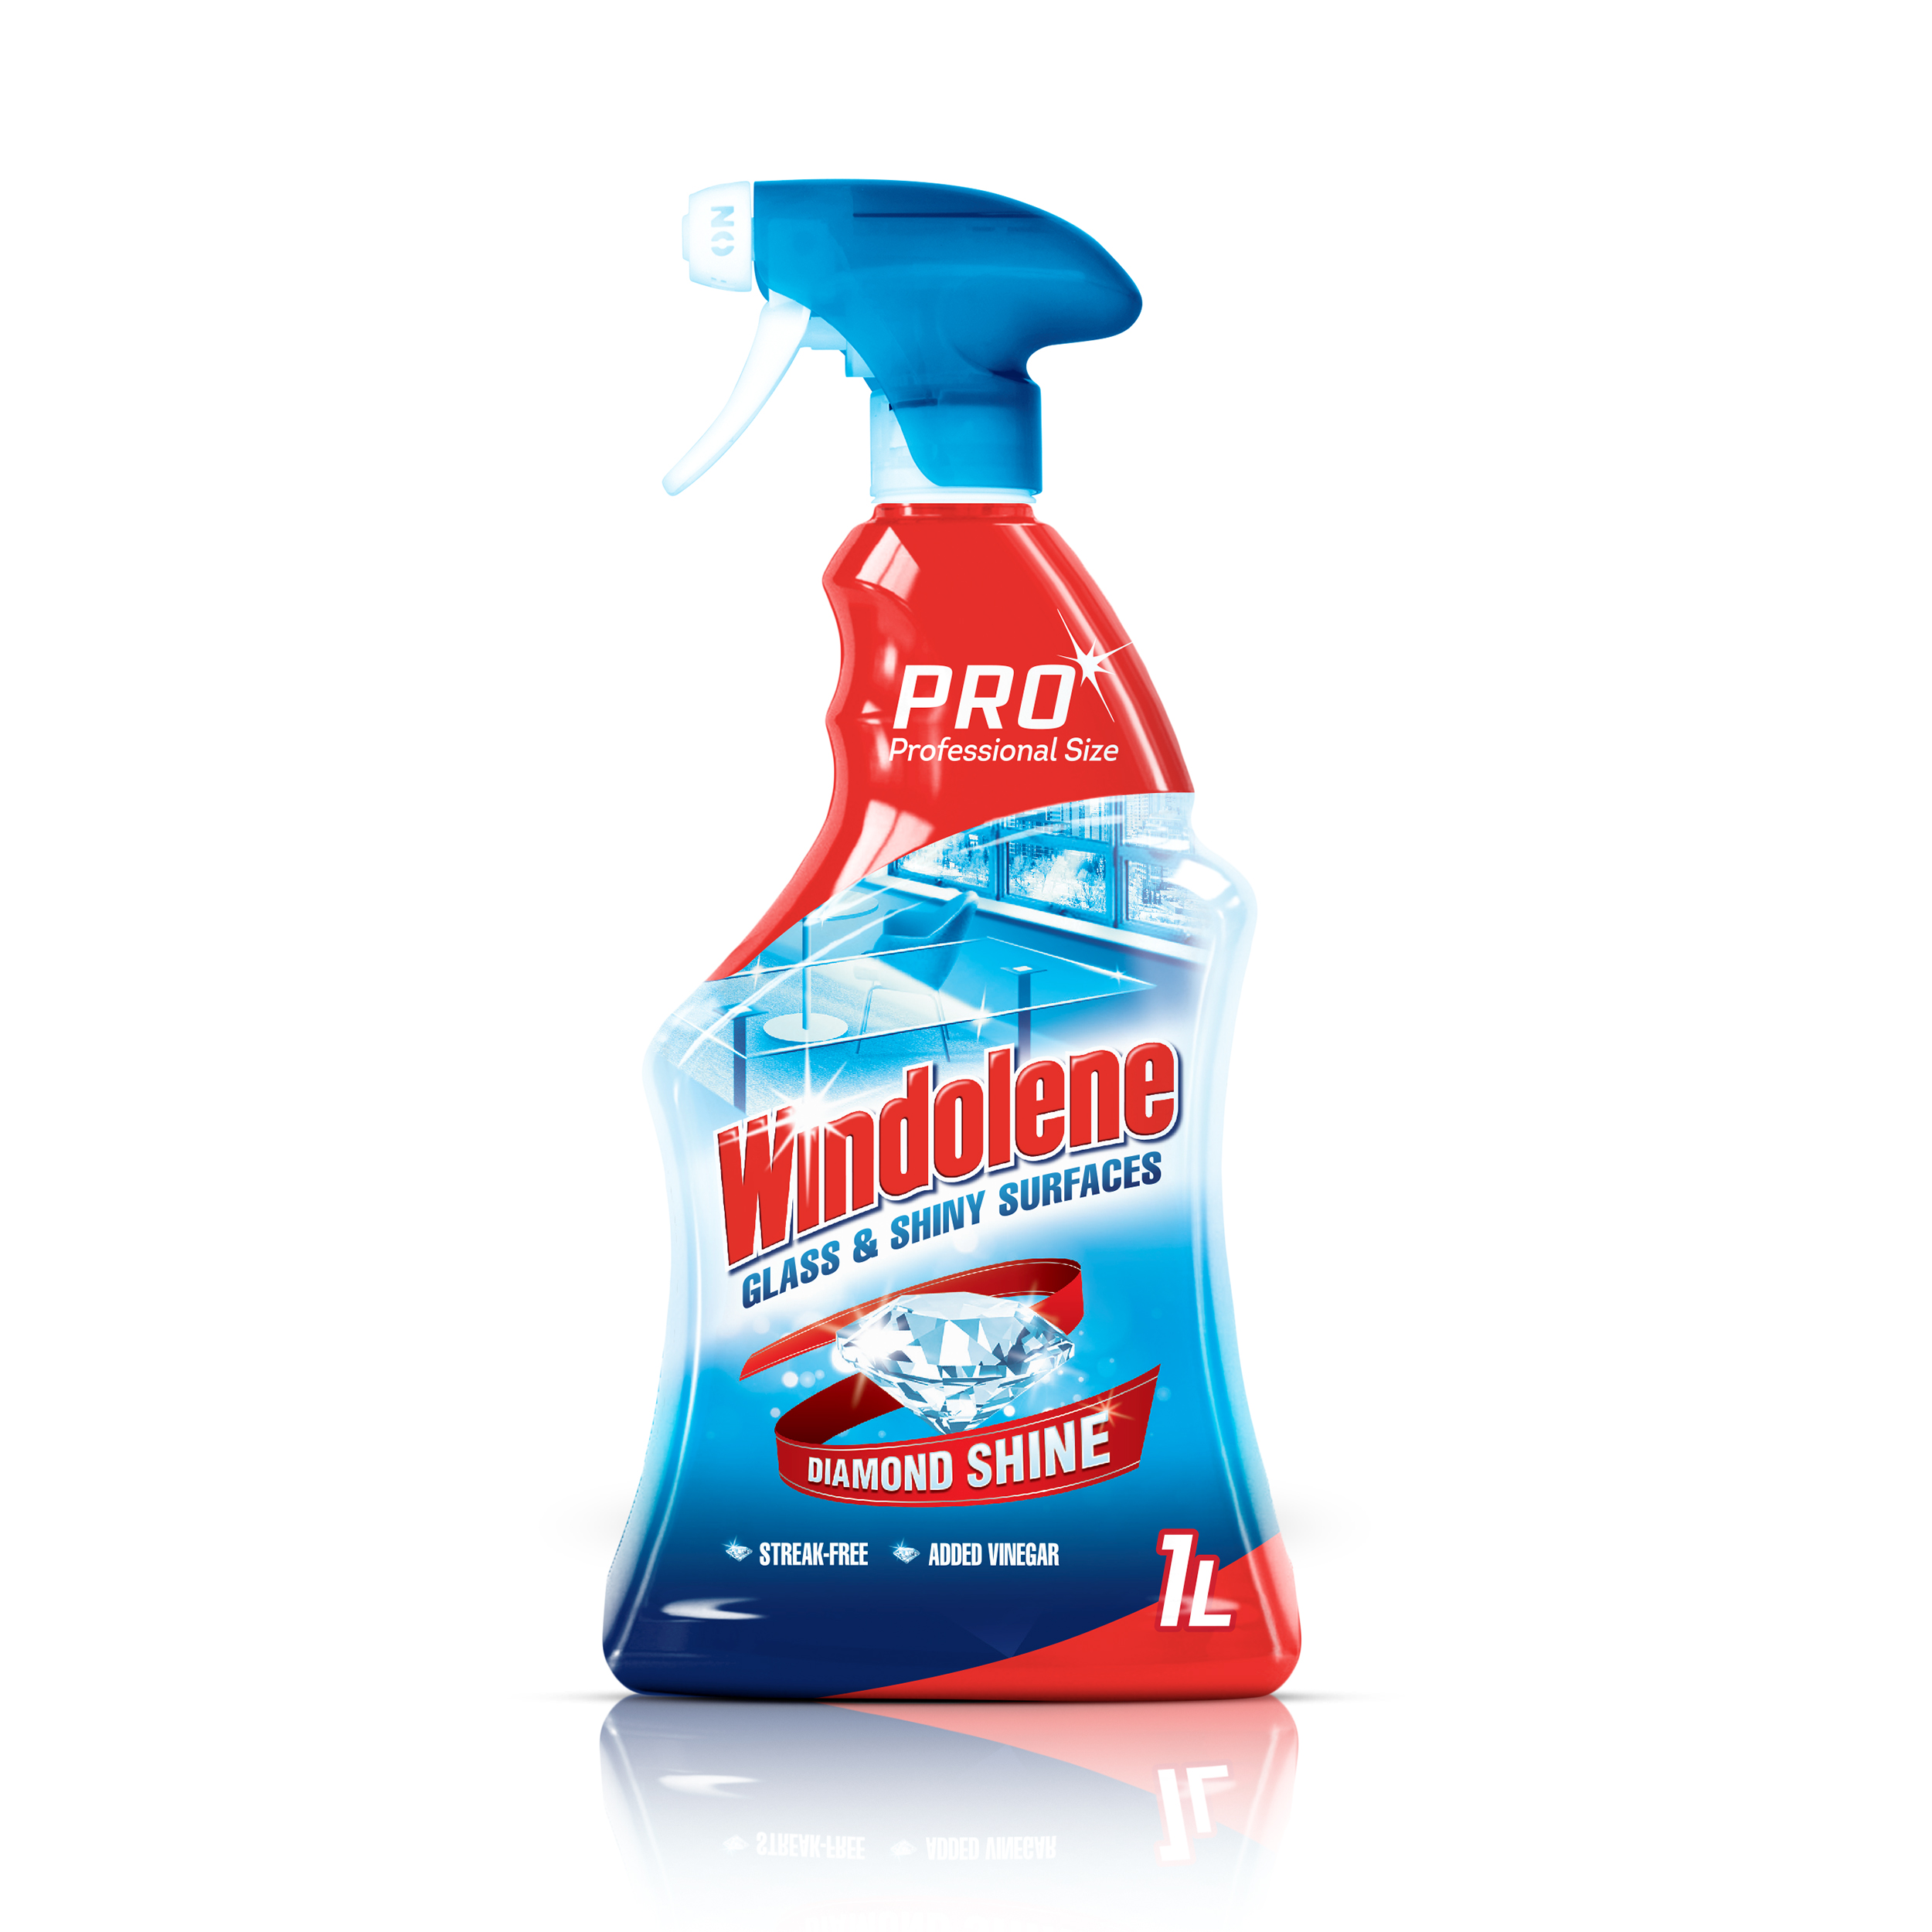 Windolene Glass & Shiny Surface Cleaner 1 Litre